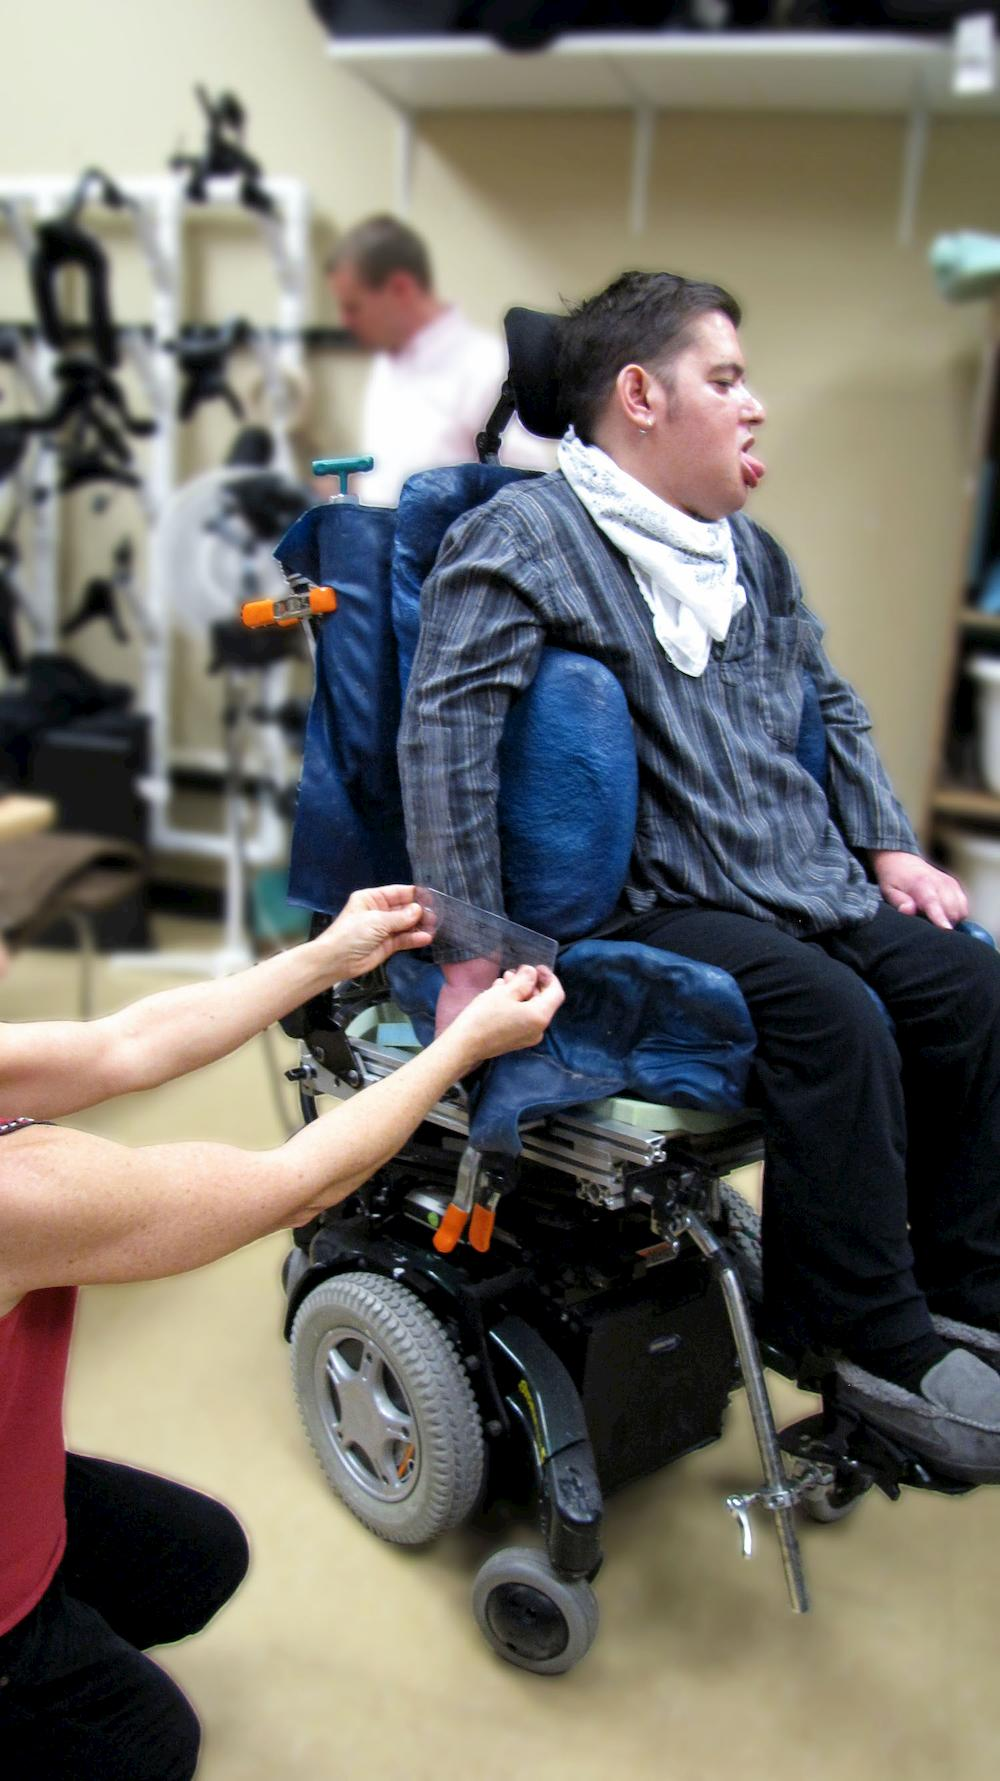 a therapist measure a person's wheelchair seating angle